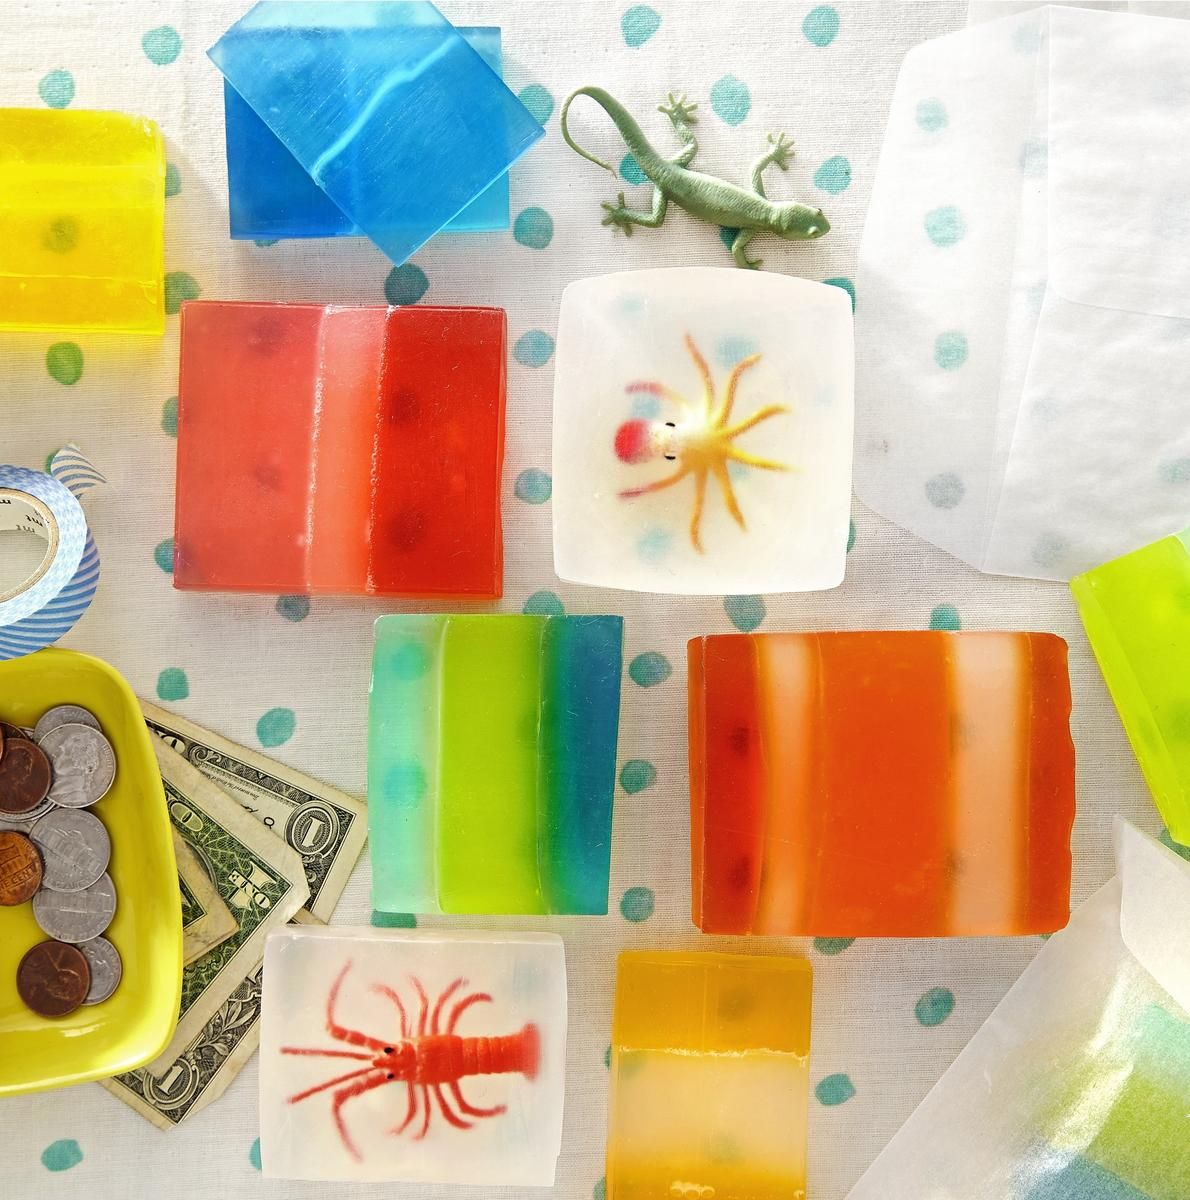 Mini Makers Crafts for Your Little